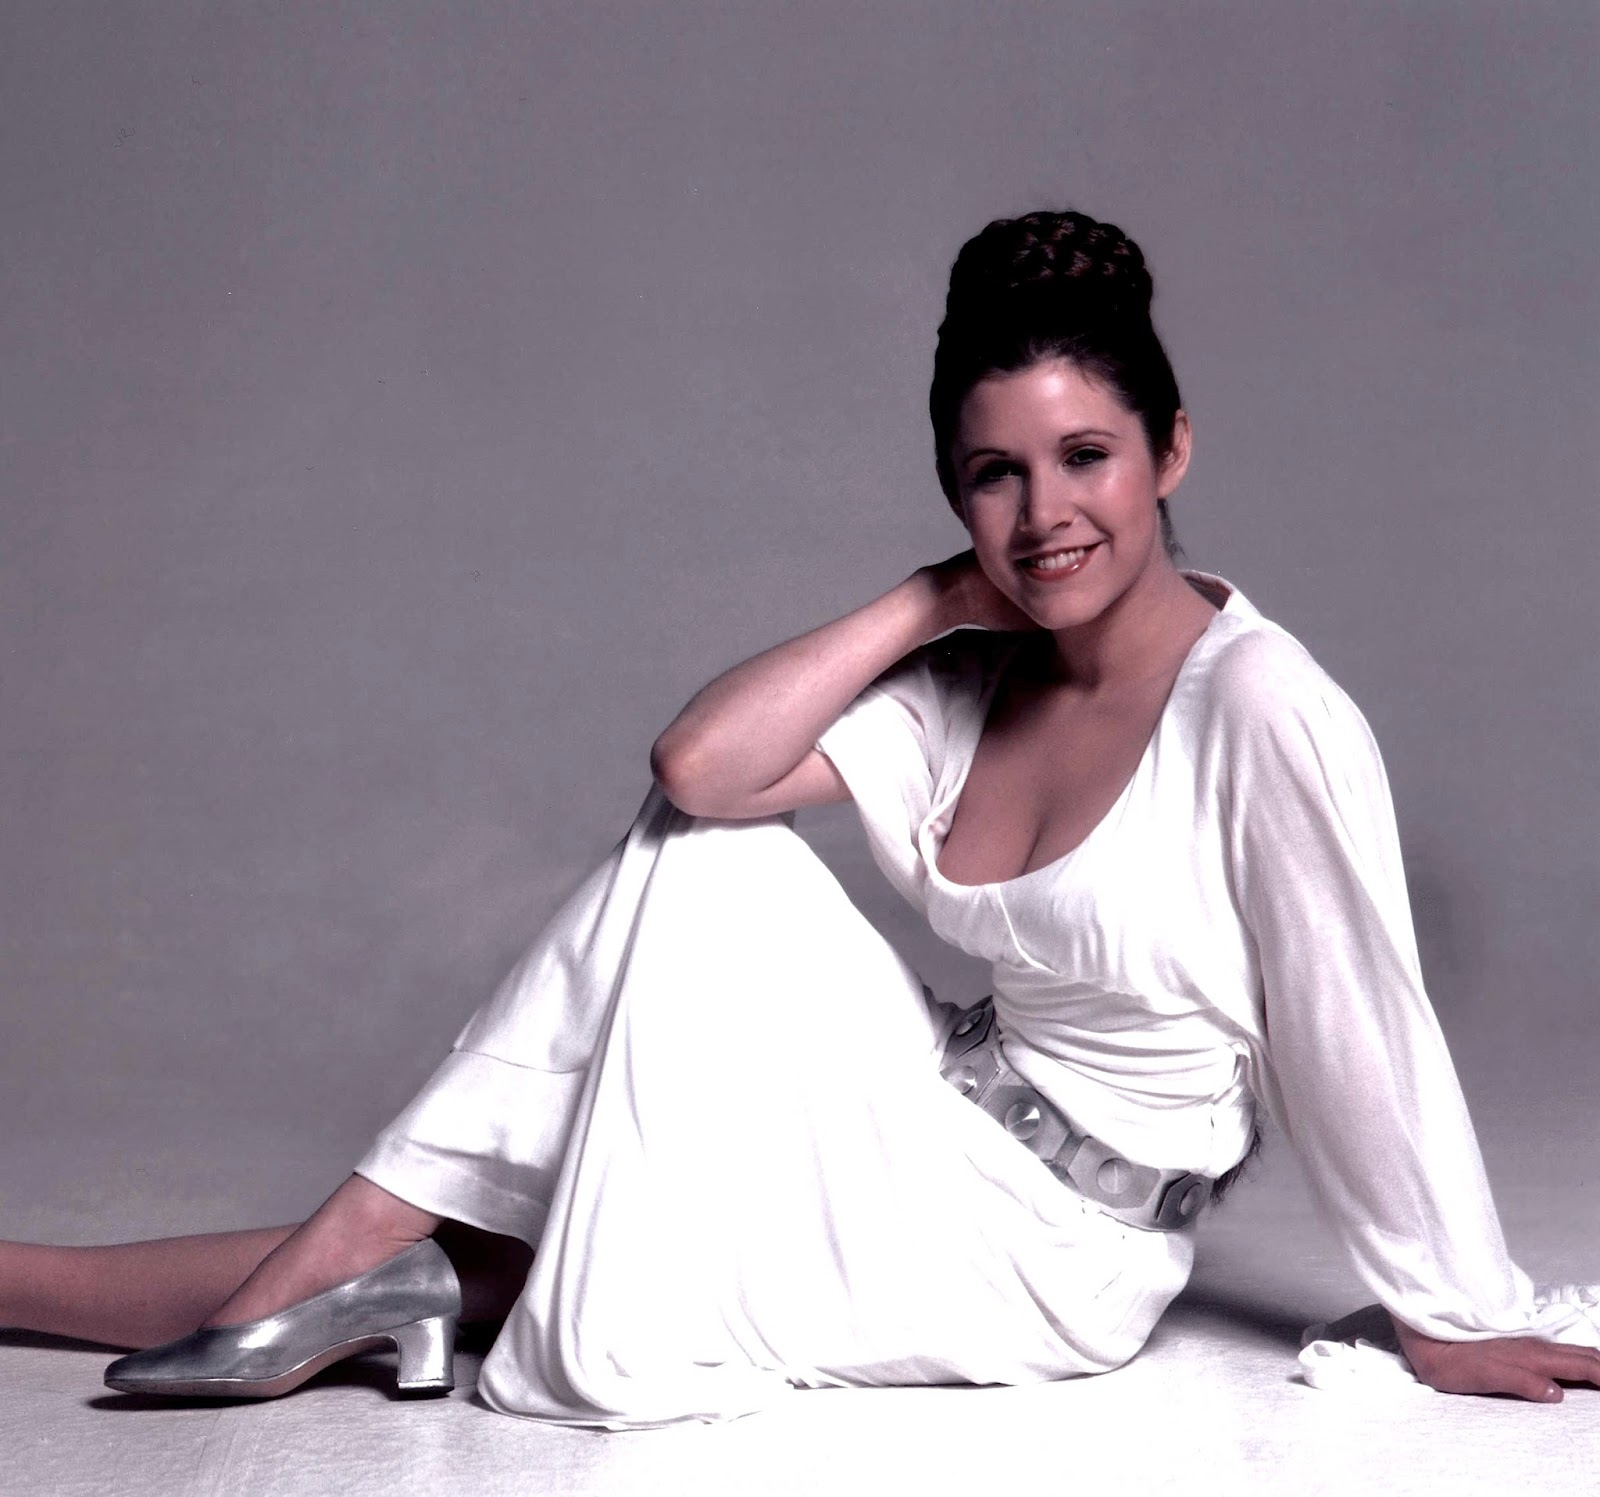 carrie-fisher-princess-leia-hot-michelle-rodriguez-porn-photos